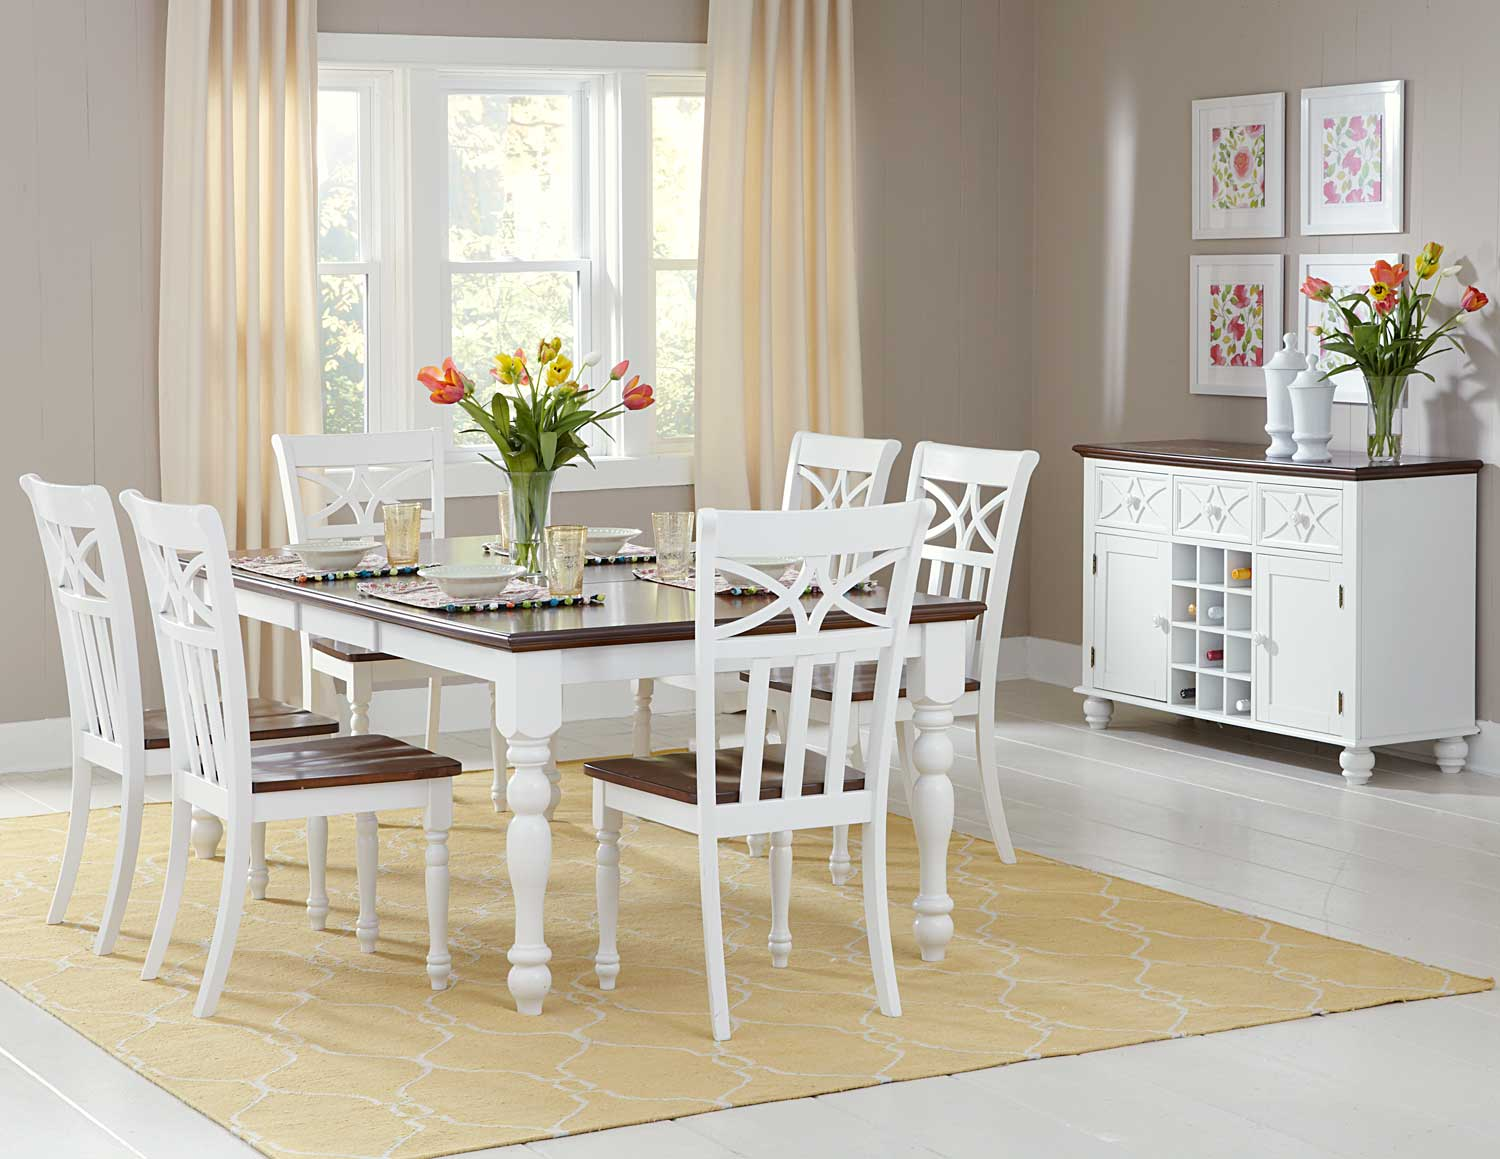 Homelegance Sanibel Dining Set - Cherry/White